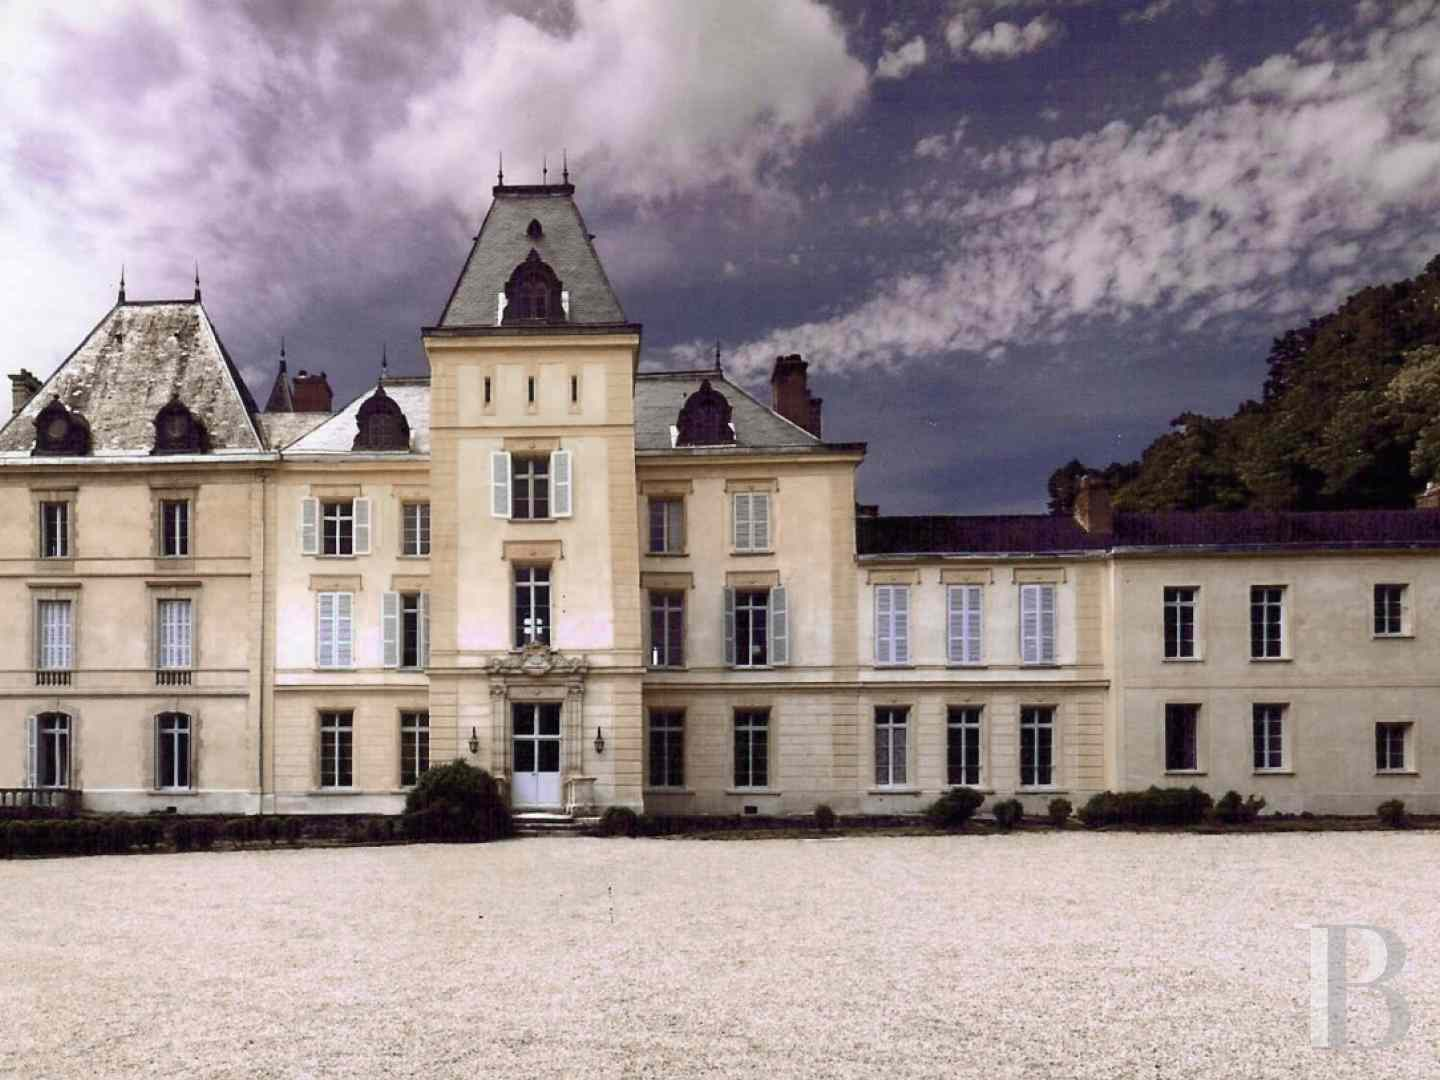 chateaux for sale France ile de france castel 17th - 1 zoom